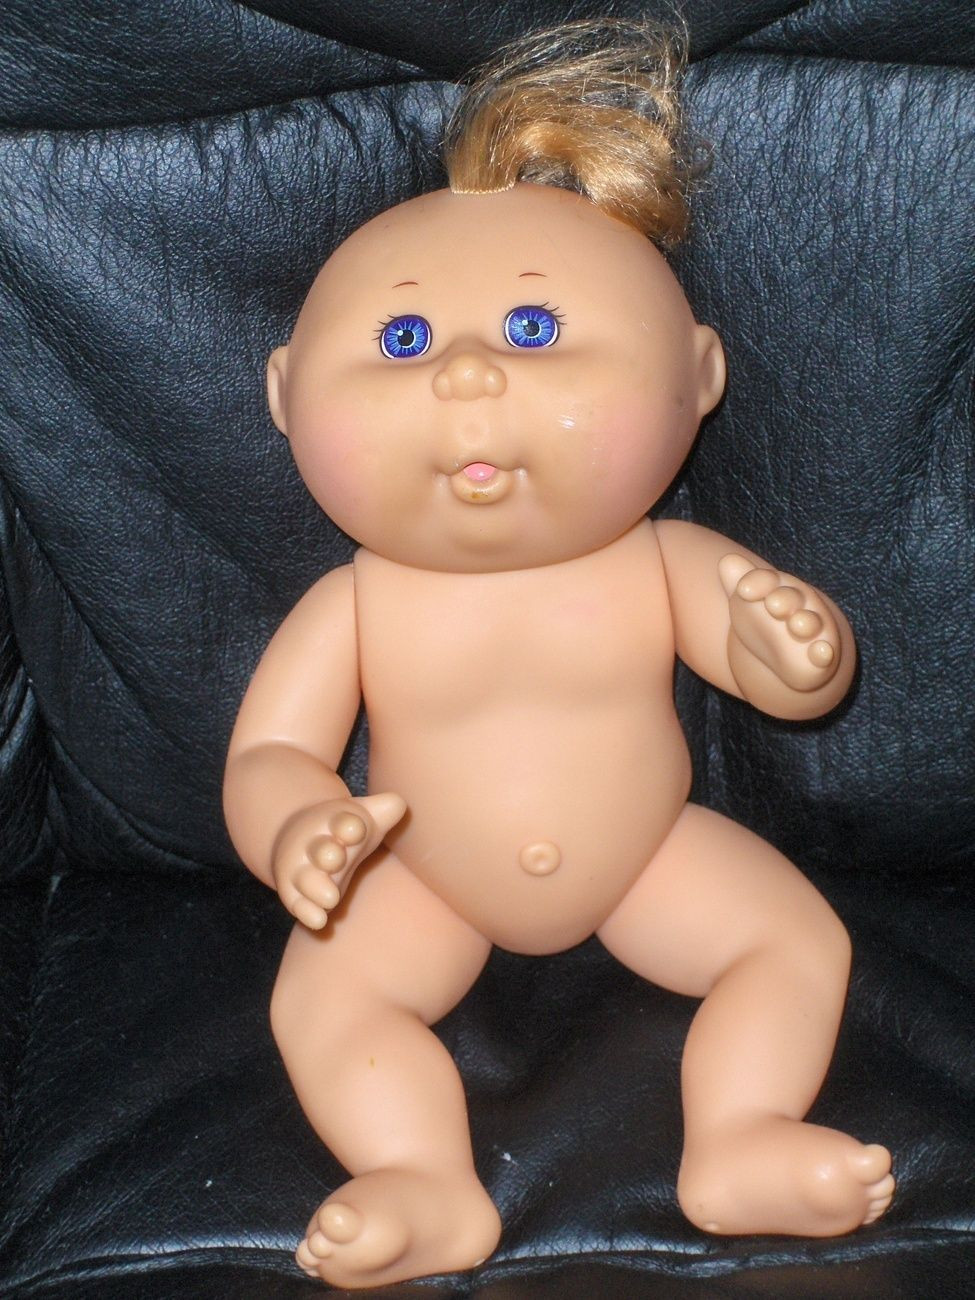 Beautiful Baby Cabbage Patch Doll Mattel First Edition 1991 Baby Cabbage Patch Doll Of Great 47 Photos Baby Cabbage Patch Doll